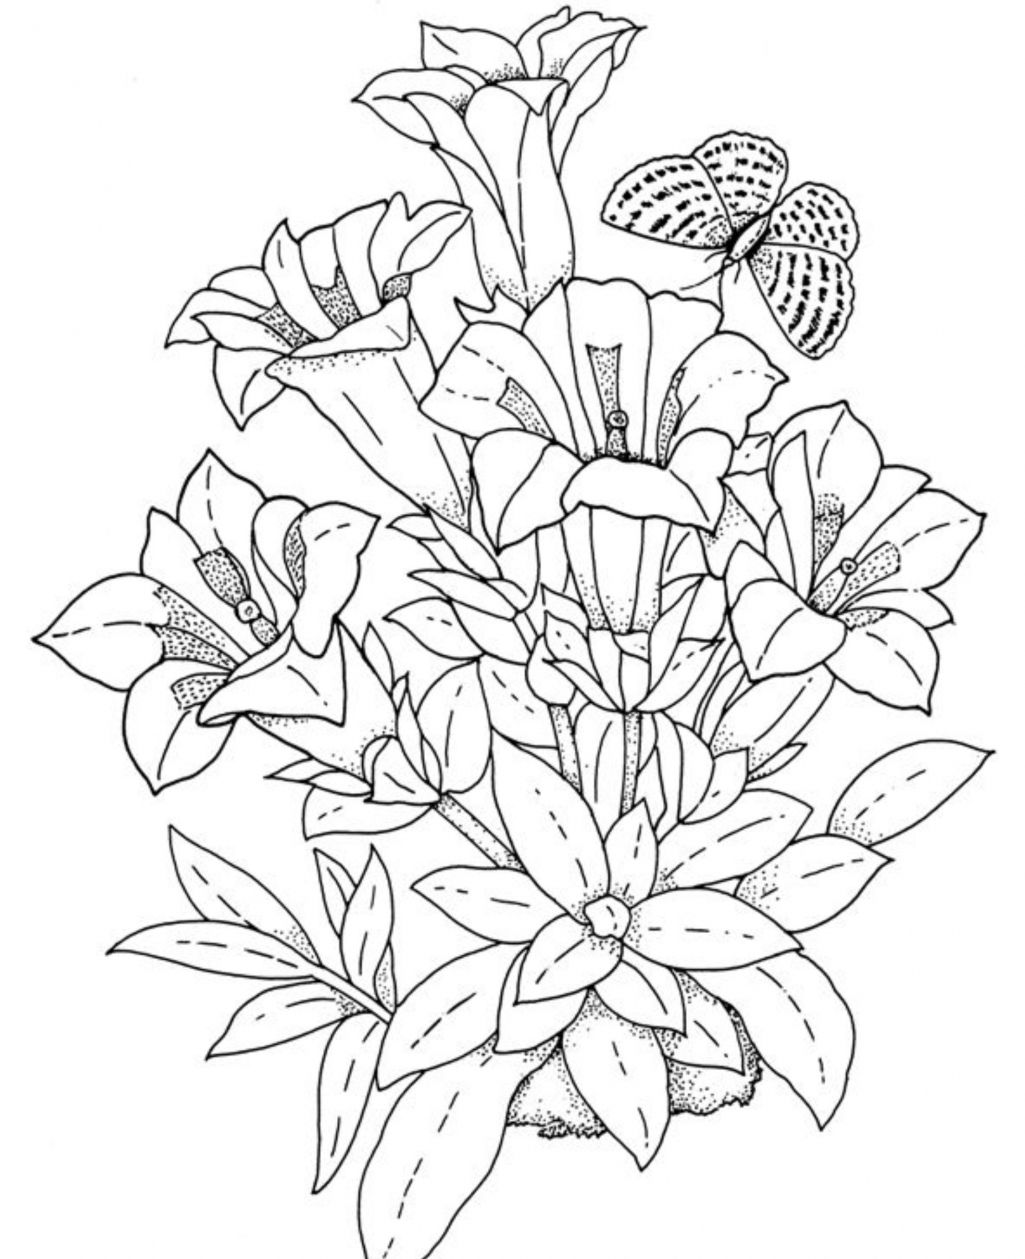 flowers coloring page free printable flower coloring pages for kids cool2bkids flowers page coloring